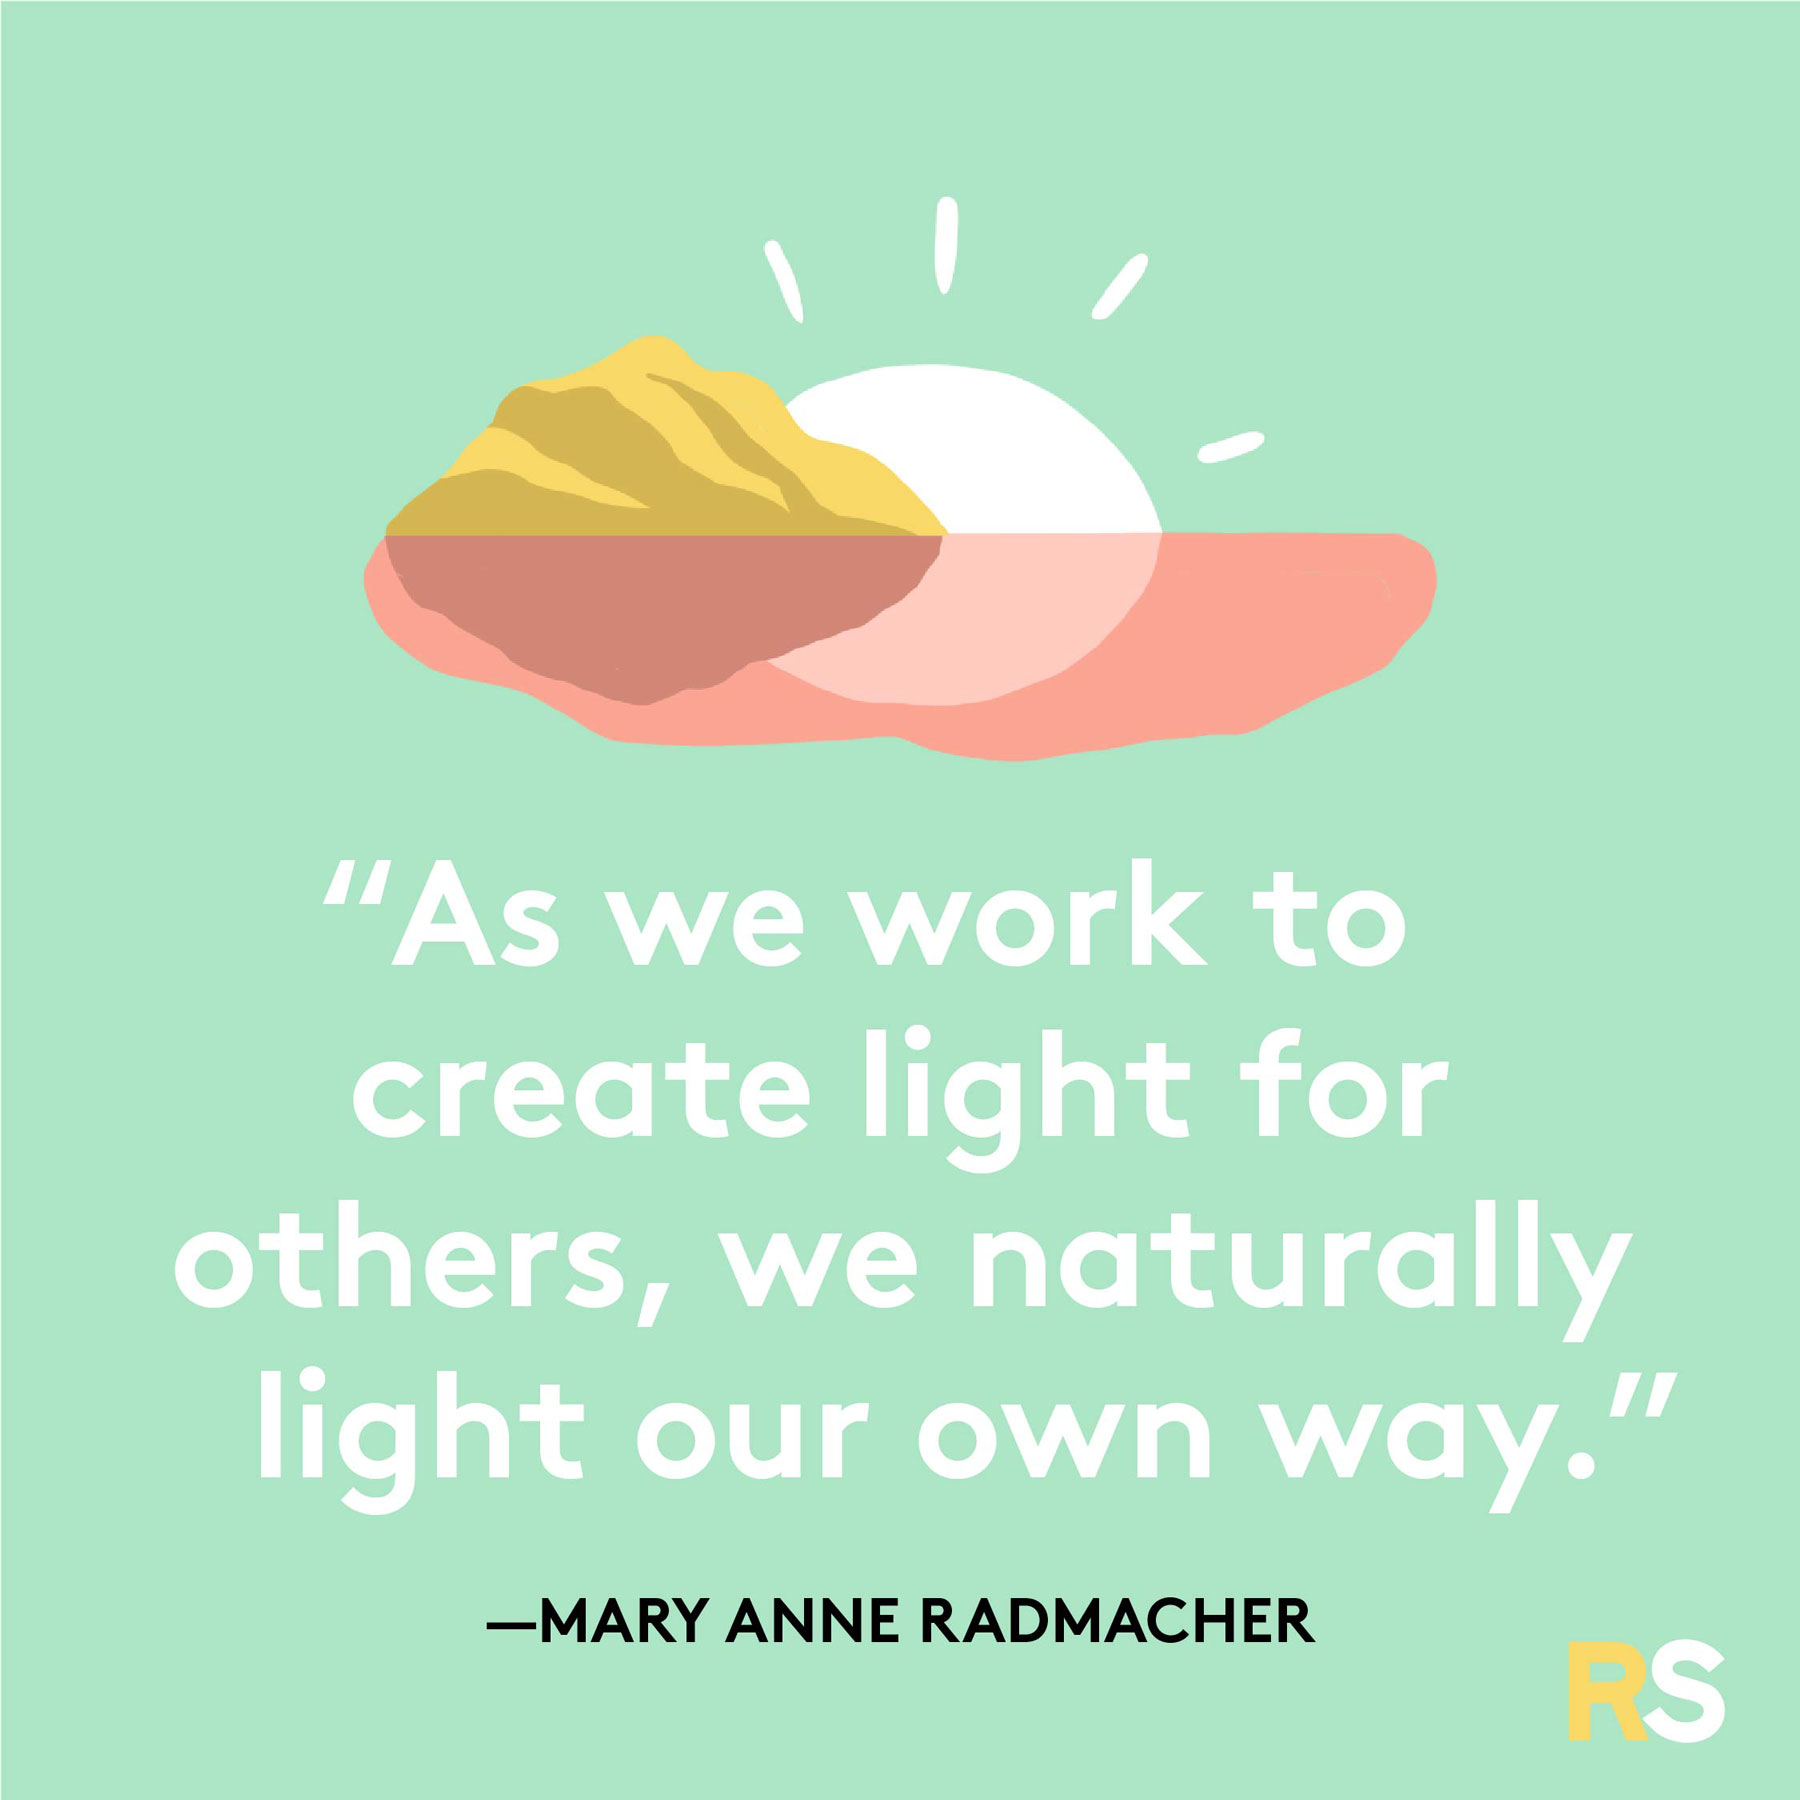 Positive motivating quotes, captions, messages – Mary Anne Radmacher quote